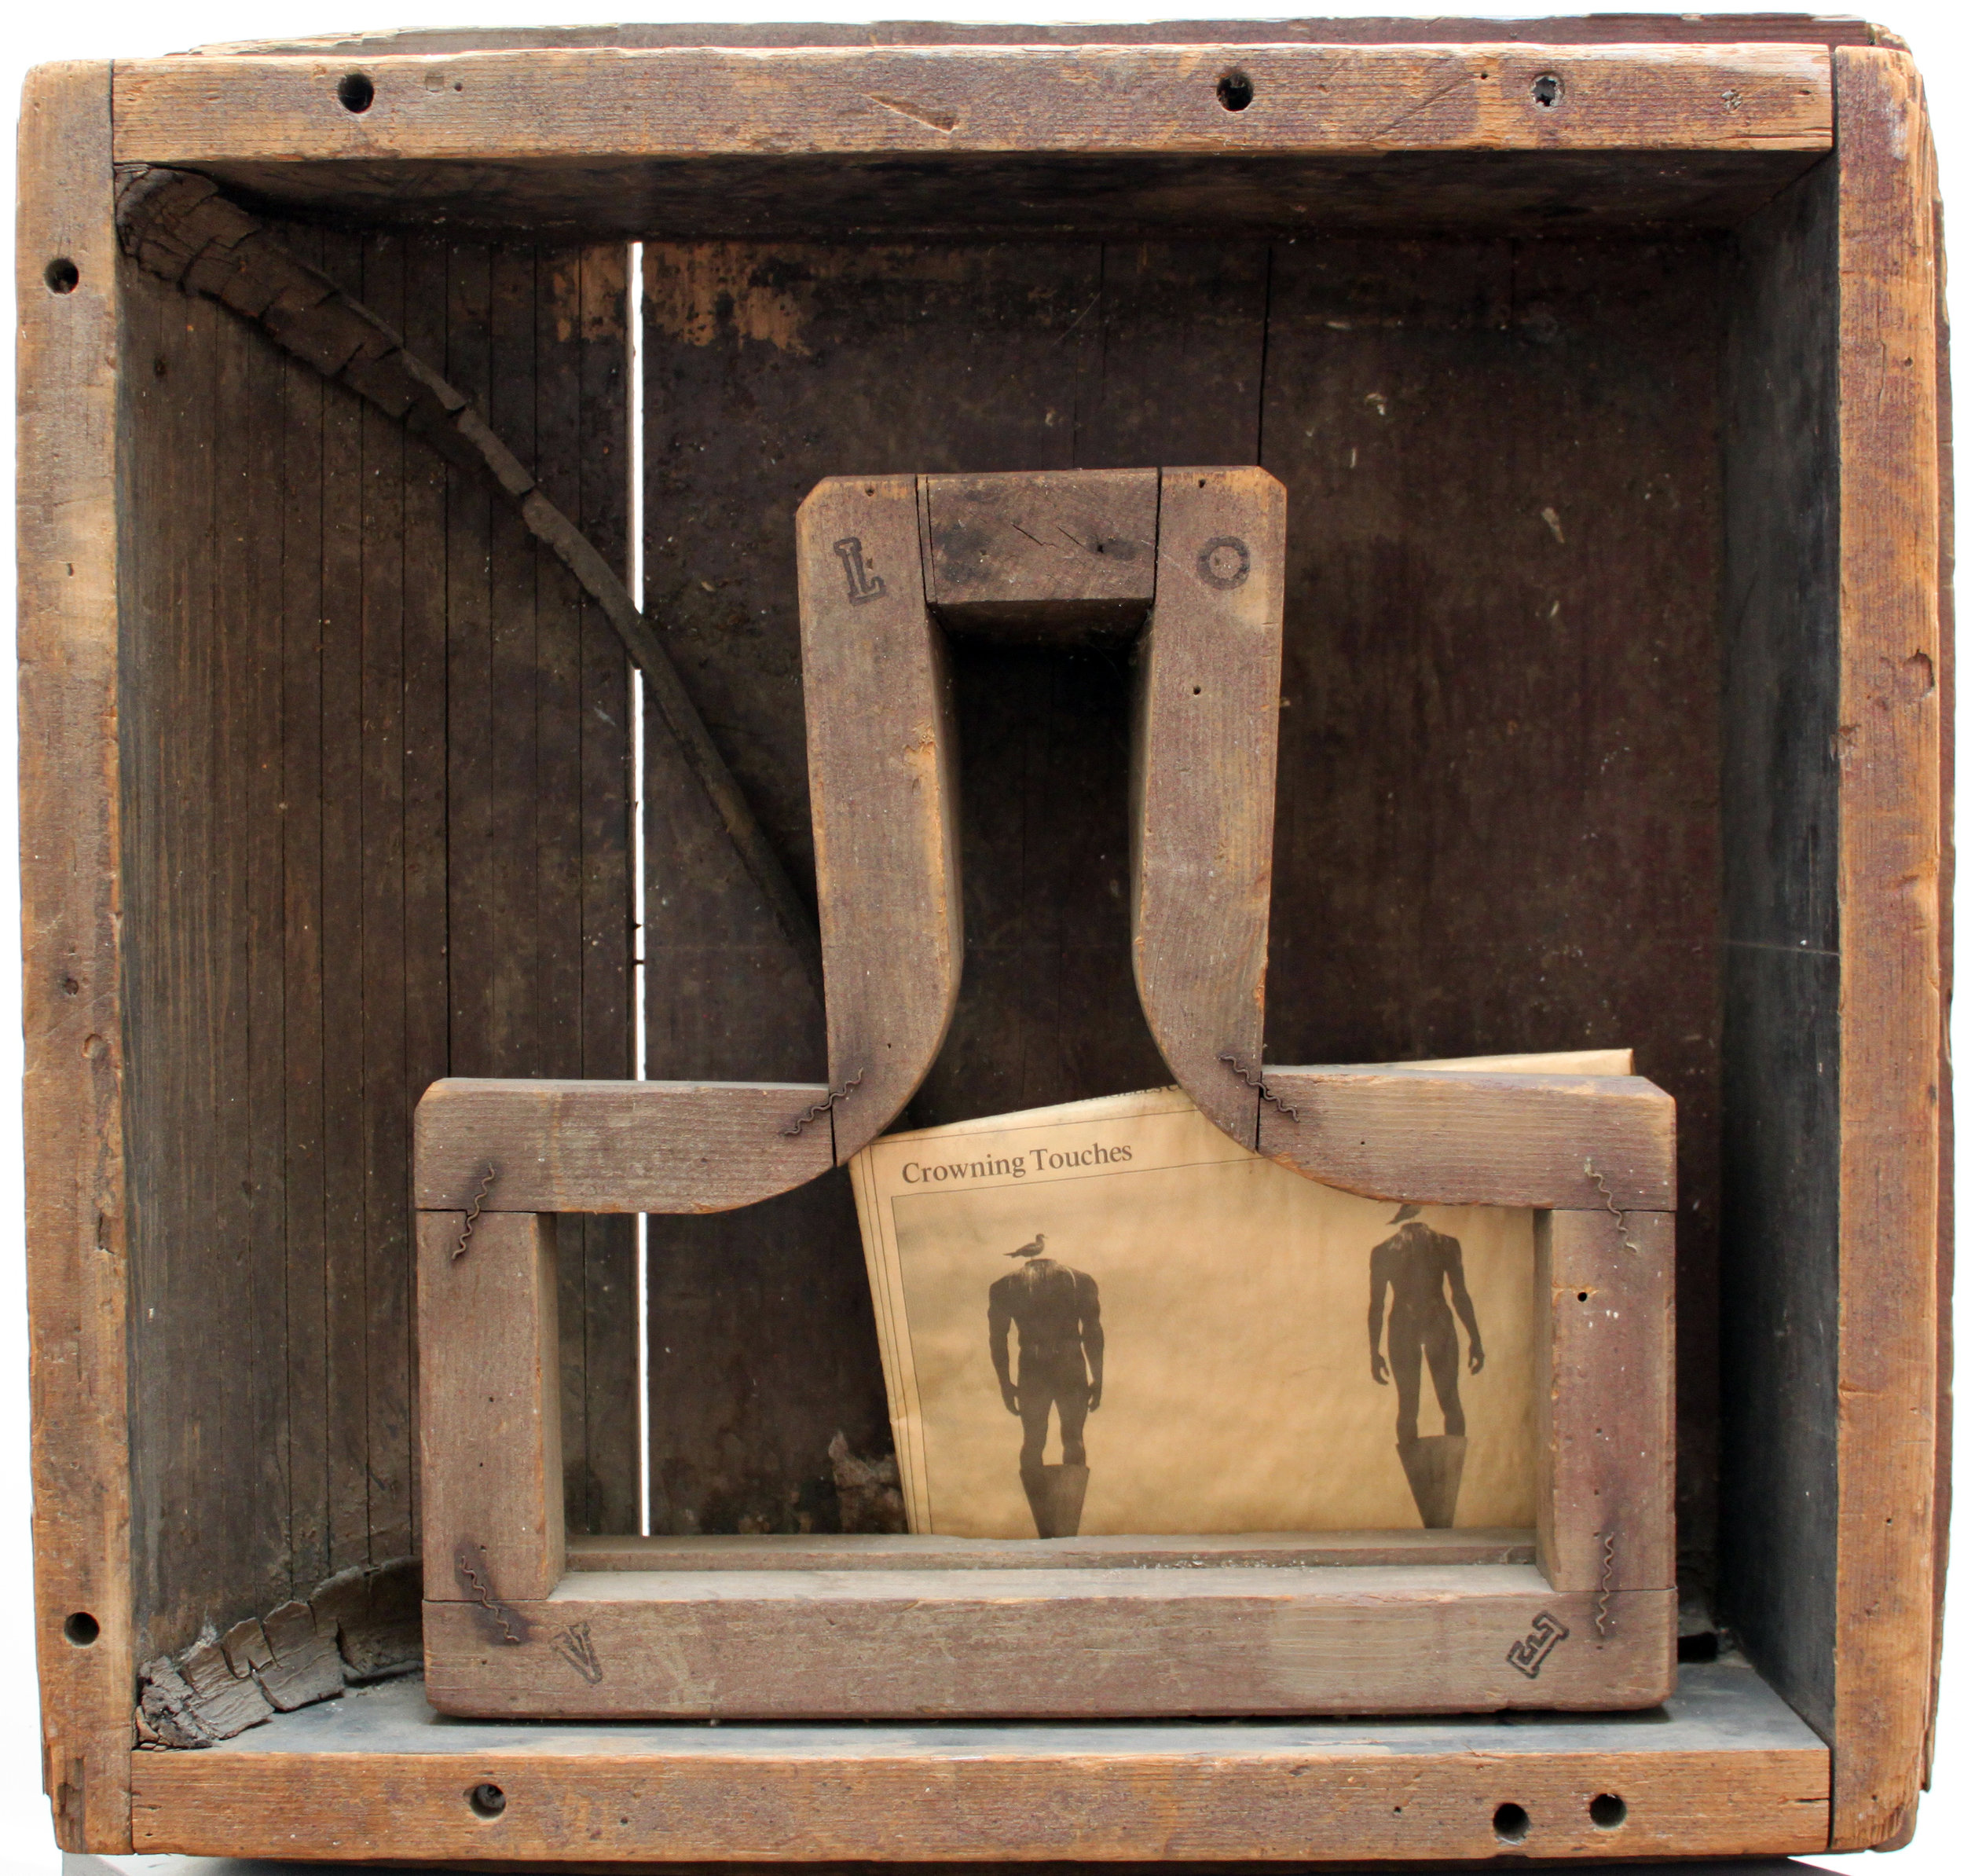 Crowning Touches, for Bob Grahm , 1984  mixed media 20 3/4 x 20 x 5 1/2 inches; 52.7 x 50.8 x 14 centimeters